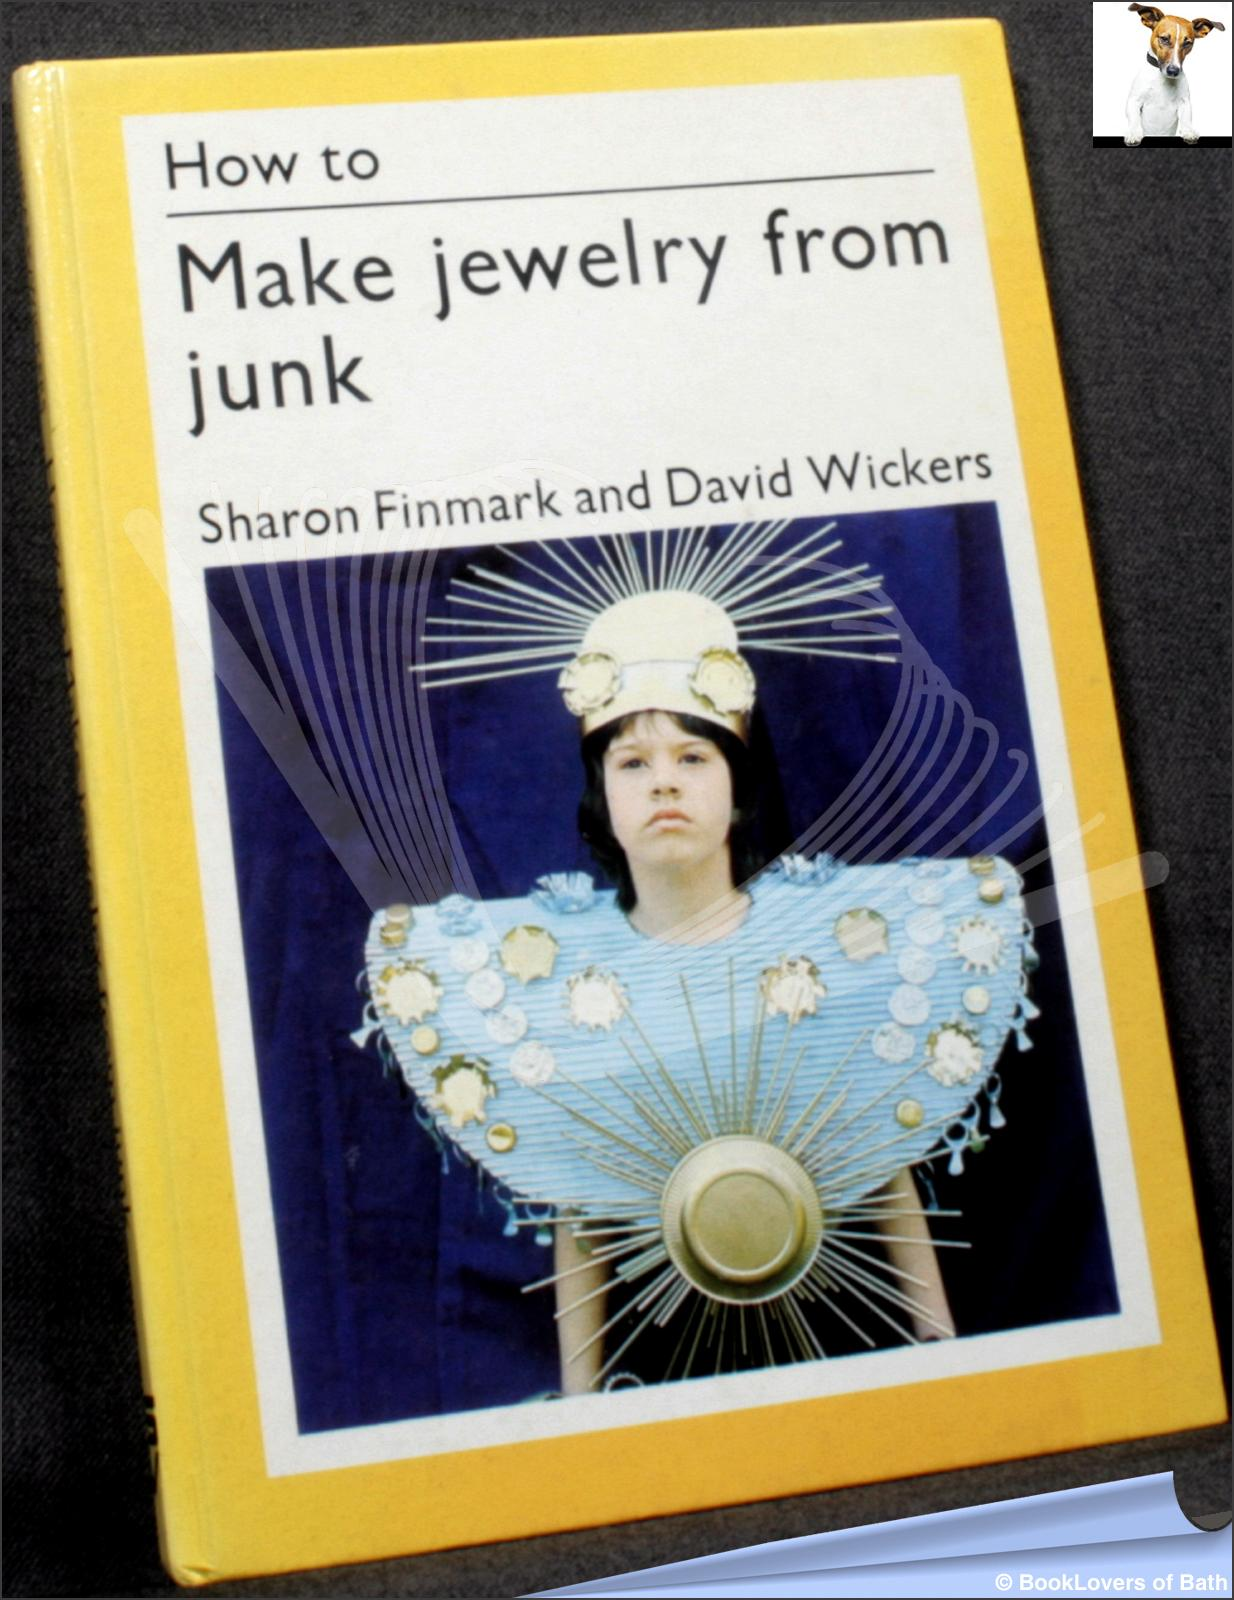 How to Make Jewellery from Junk - Sharon Finmark & David Wickers